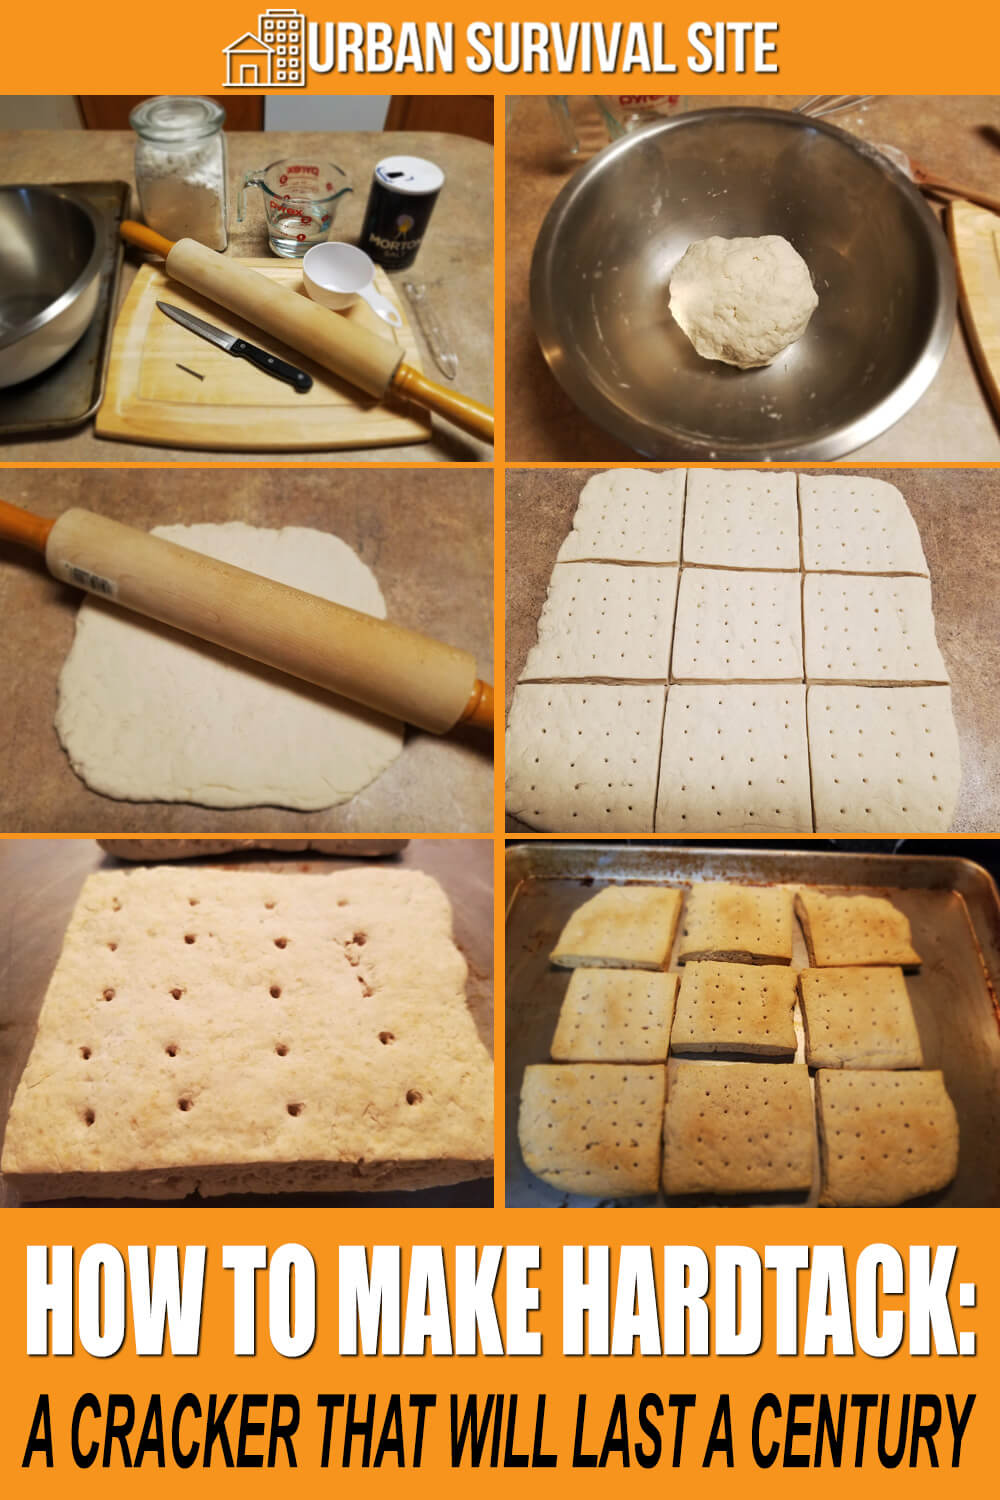 How to Make Hardtack: A Cracker That Will Last a Century